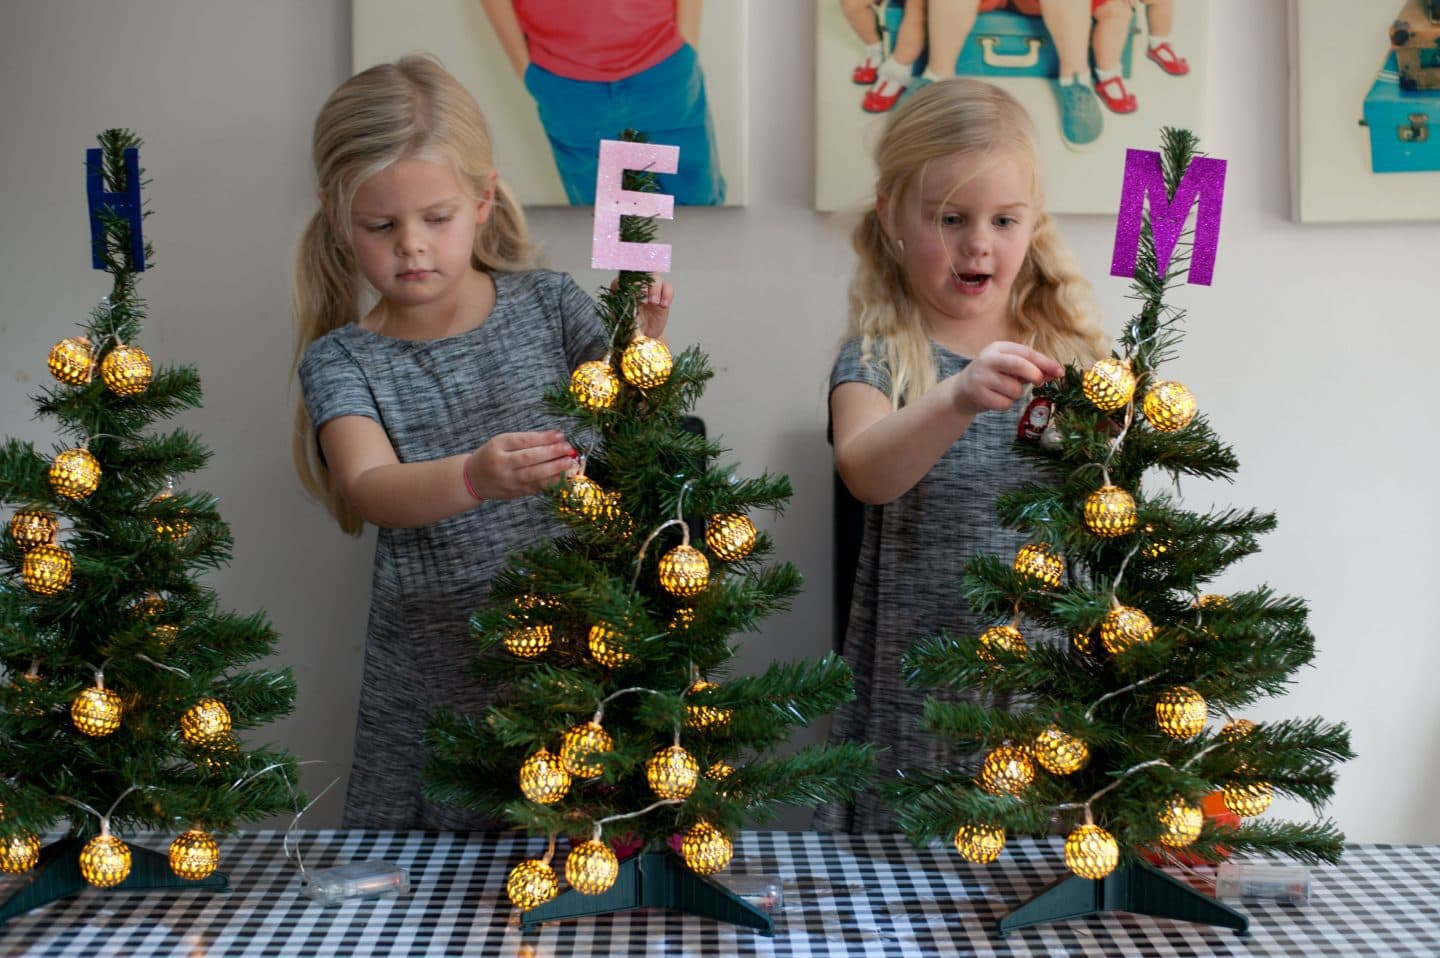 eva-and-meggy-dressing-the-trees